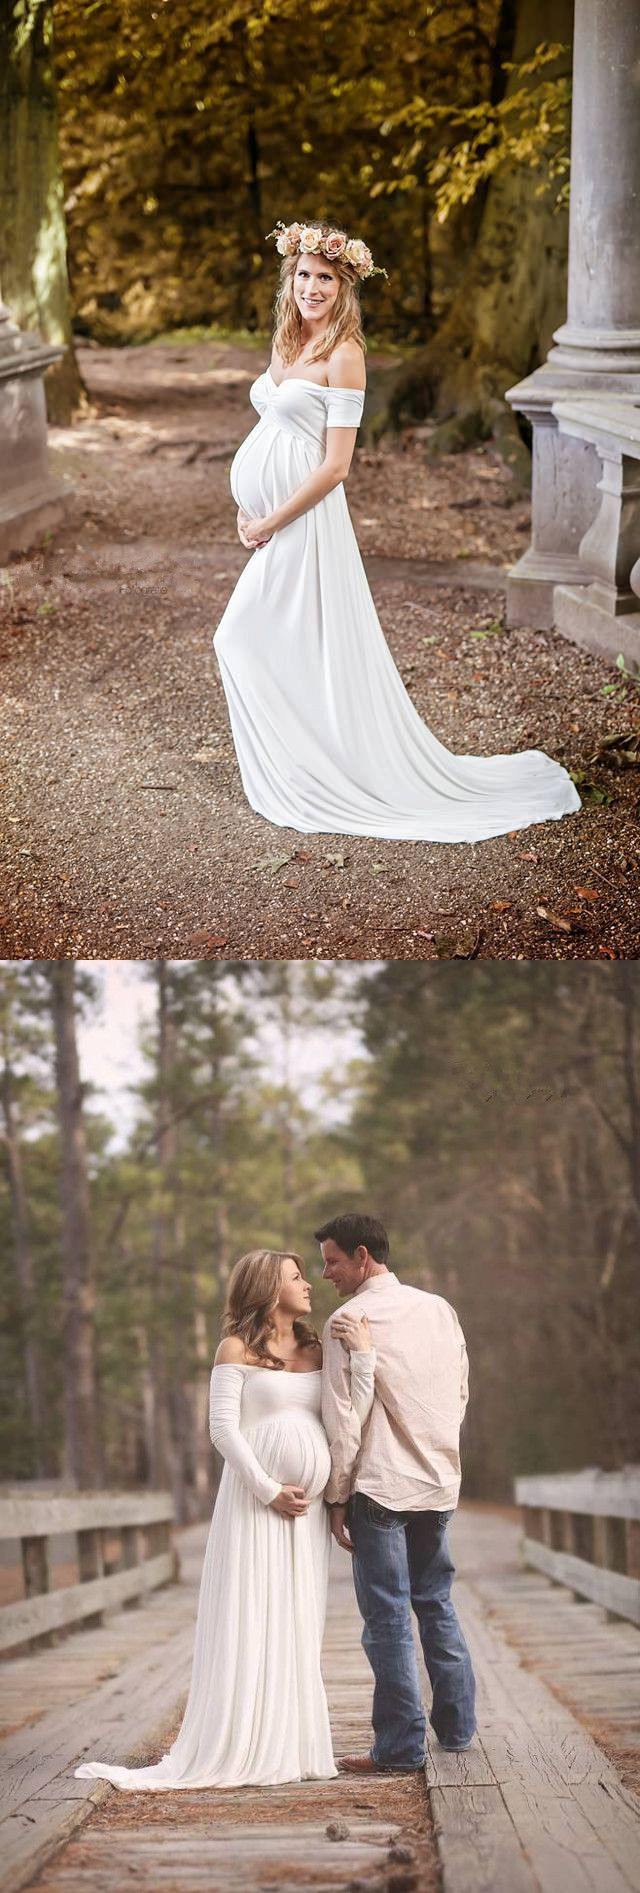 Simple white wedding dresses   Maternity Wedding Gowns Empire White Soft Chiffon Off The